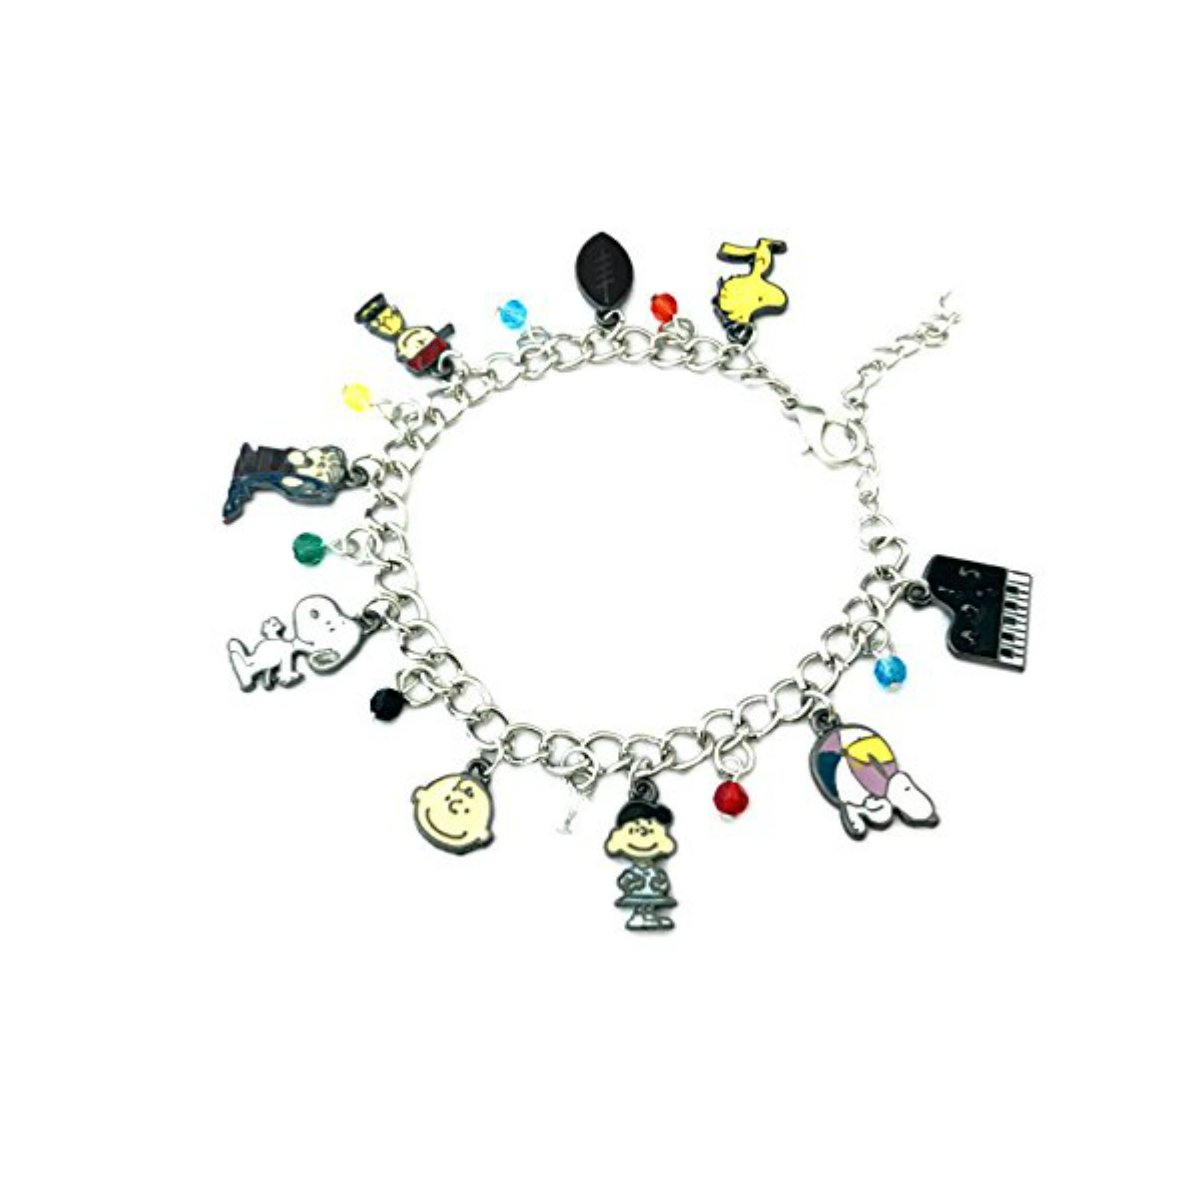 US FAMILY Peanuts Charlie Brown Movie Series Theme Multi Charms Jewelry Bracelets Charm by Family Brands